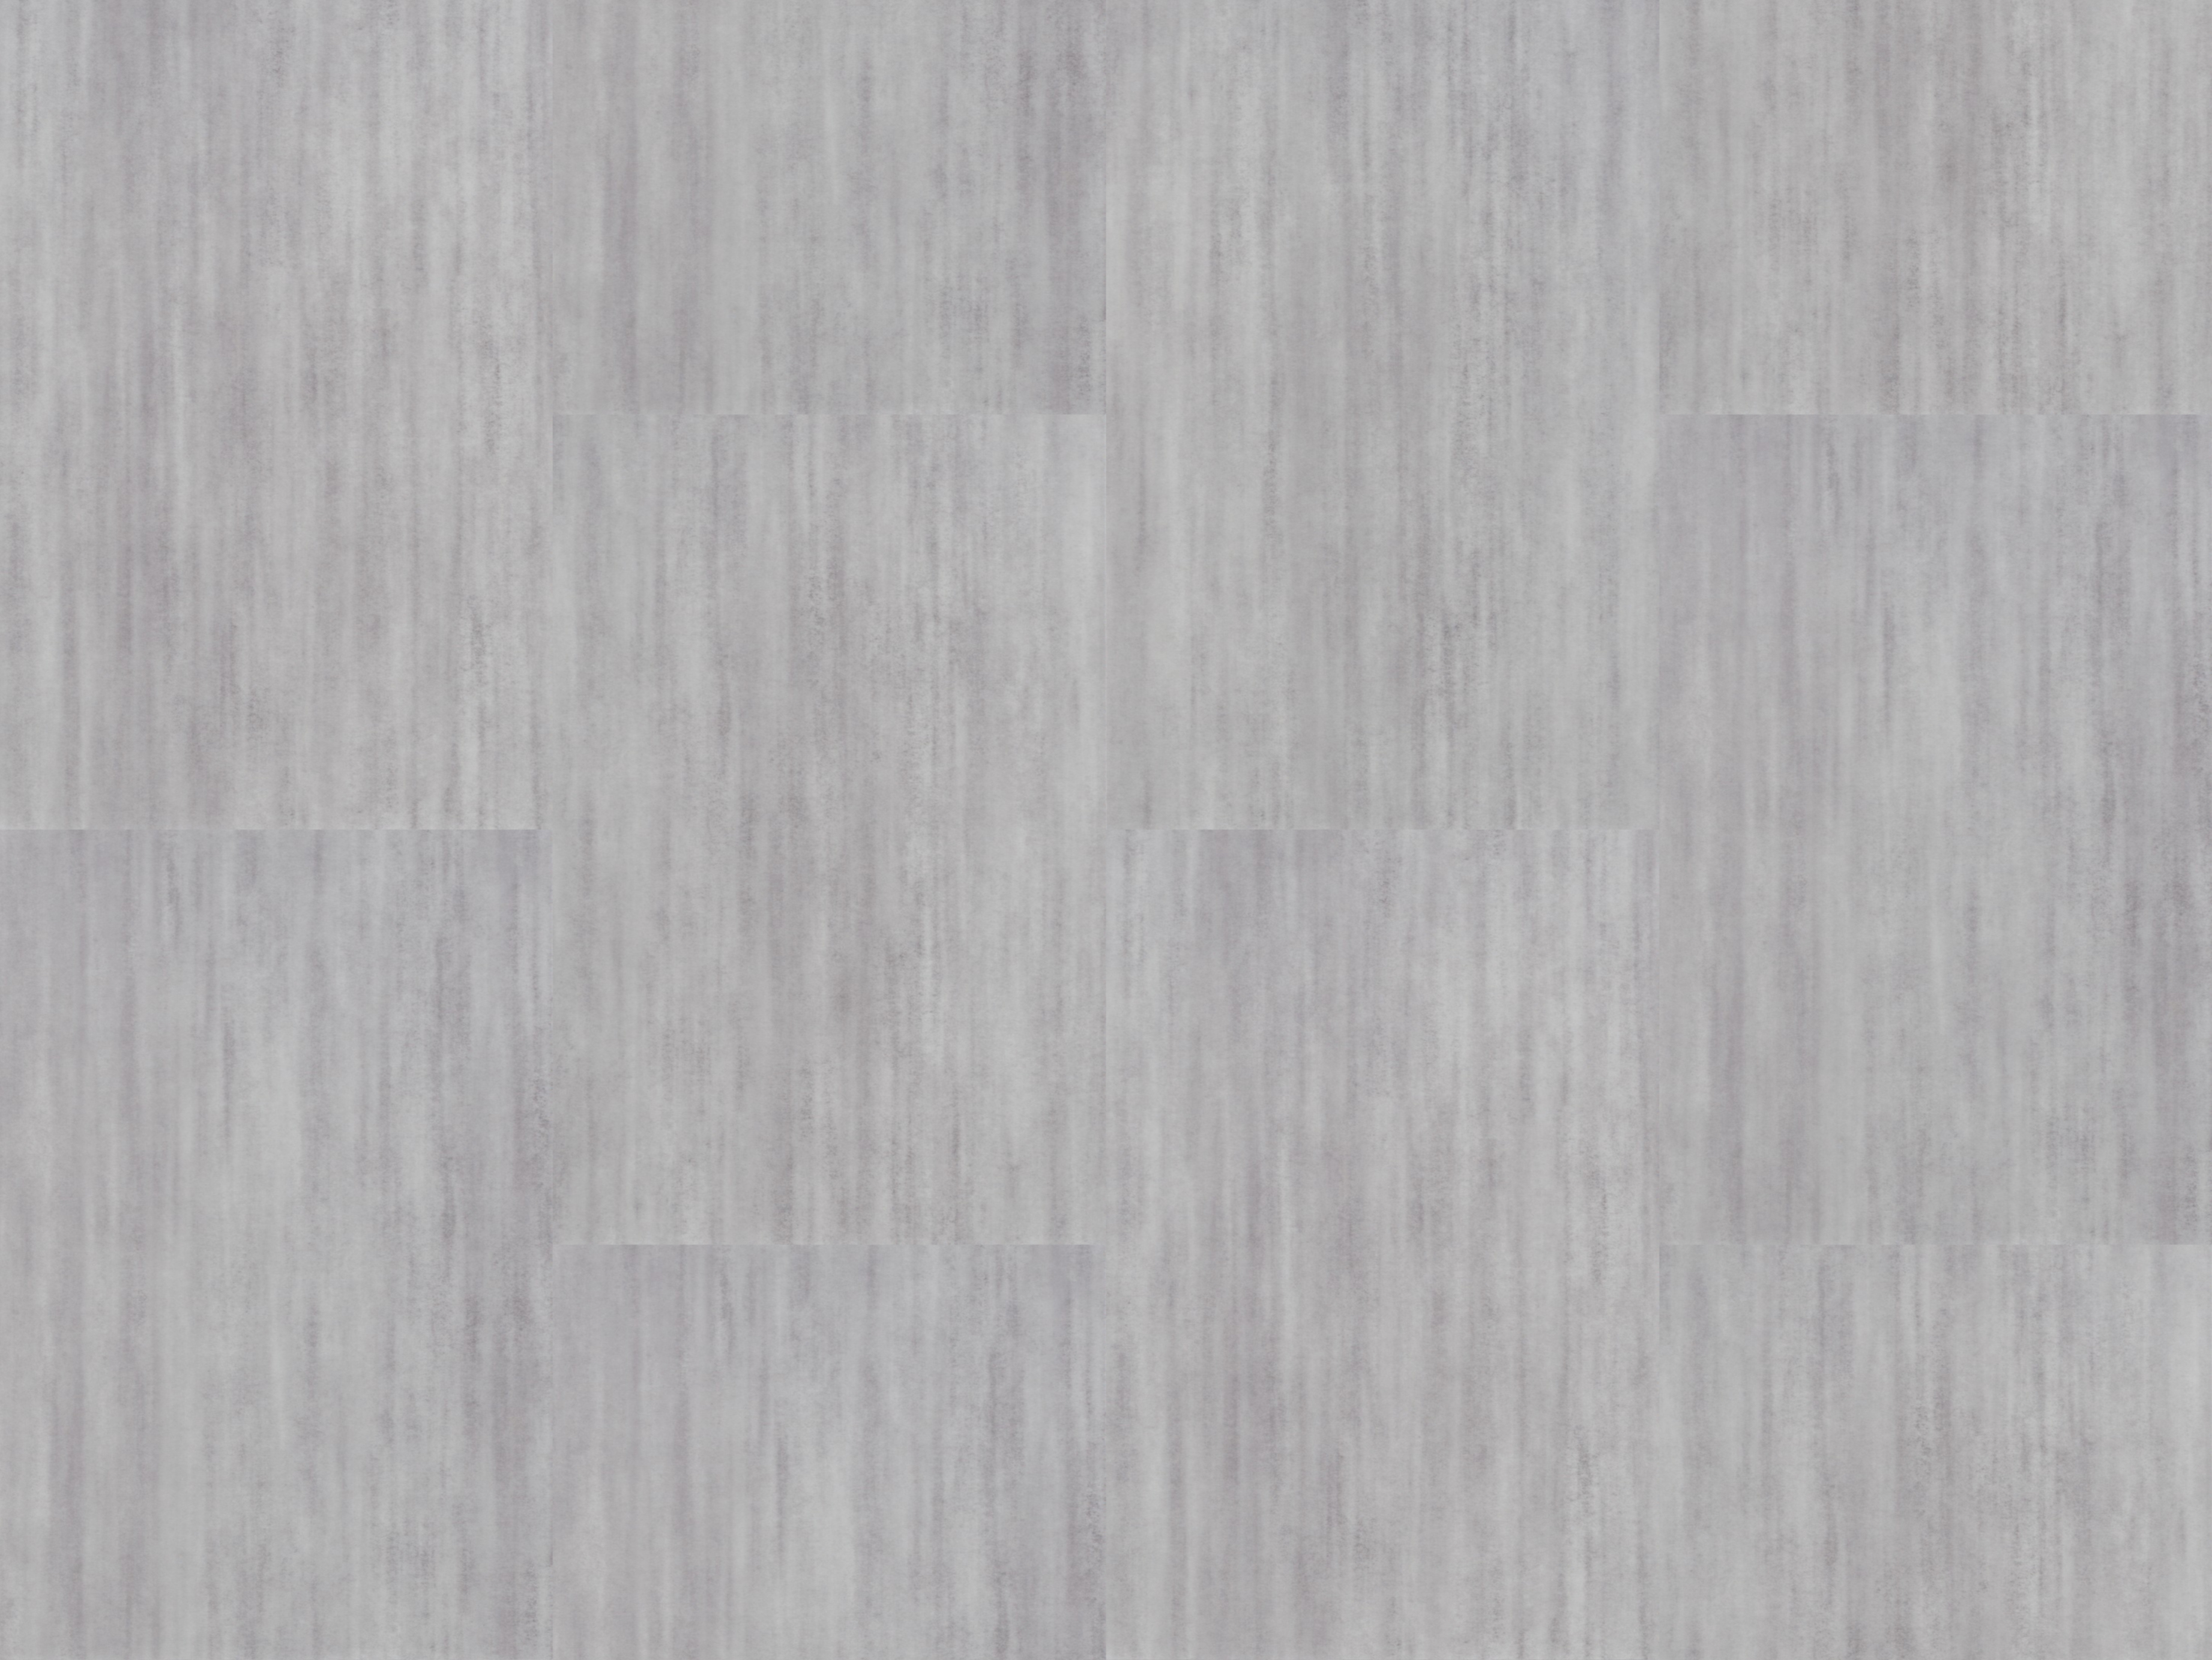 Allura stone luxury vinyl tiles by forbo flooring systems for Grey linoleum flooring